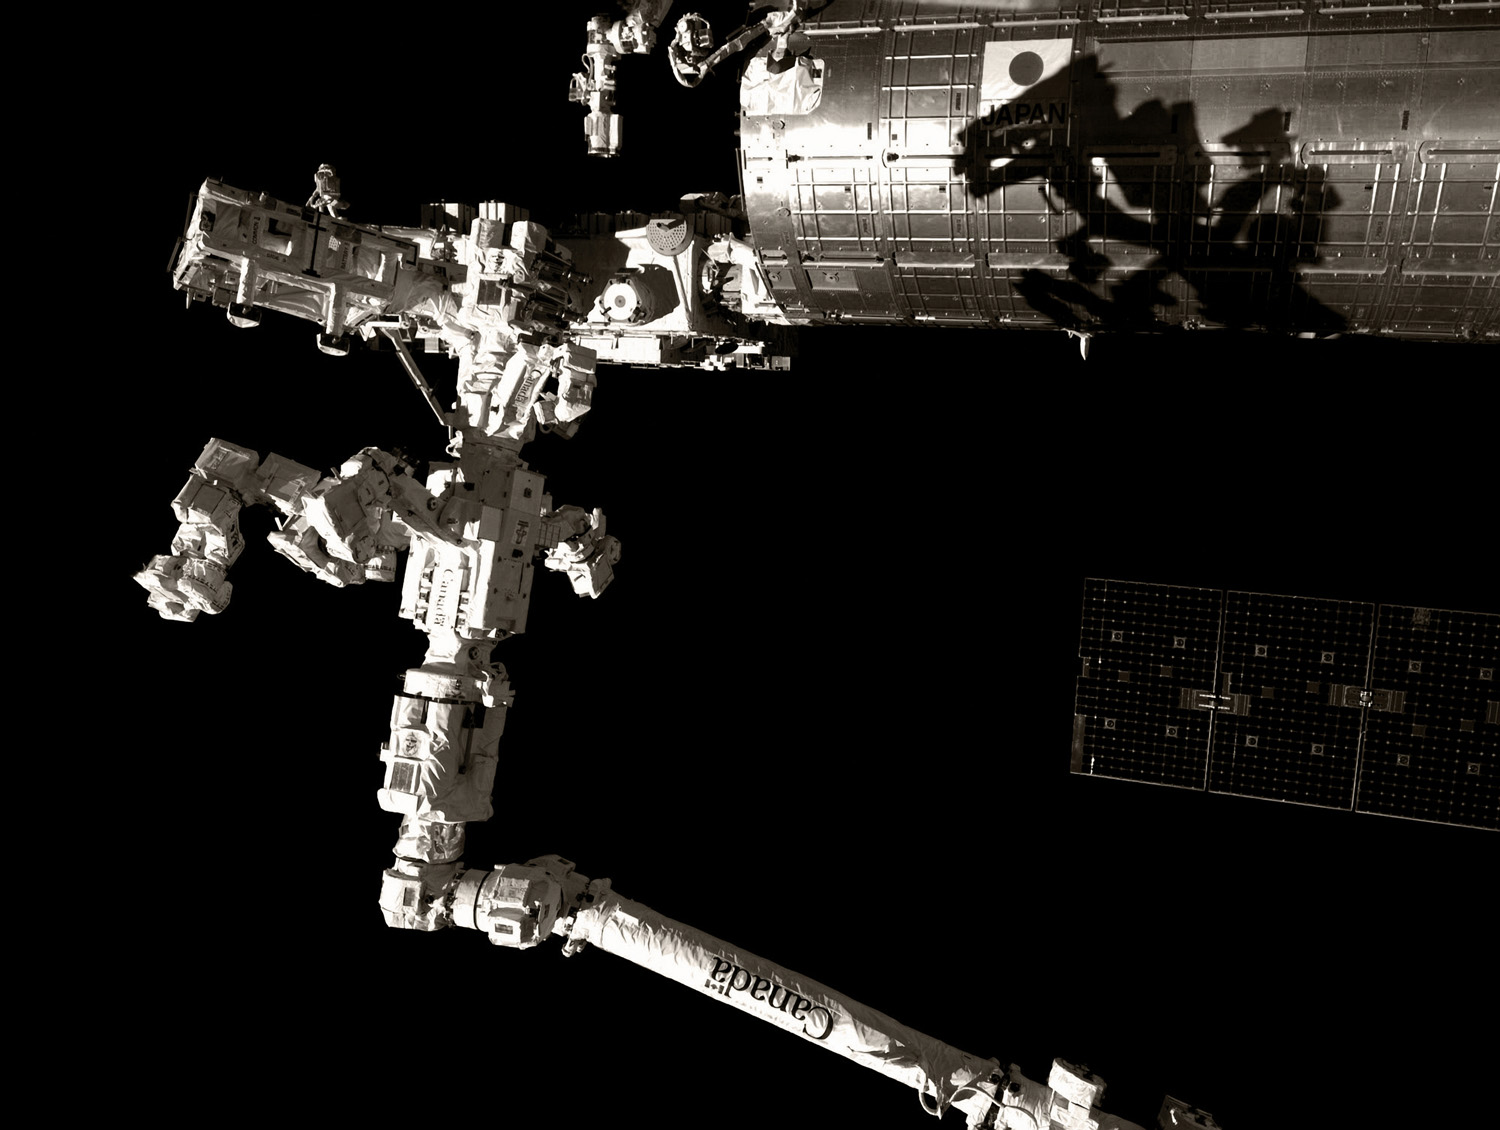 Godzilla in space: Canada arm with Dexter attachment and shadow on the Japanese module, rendered in B&W.